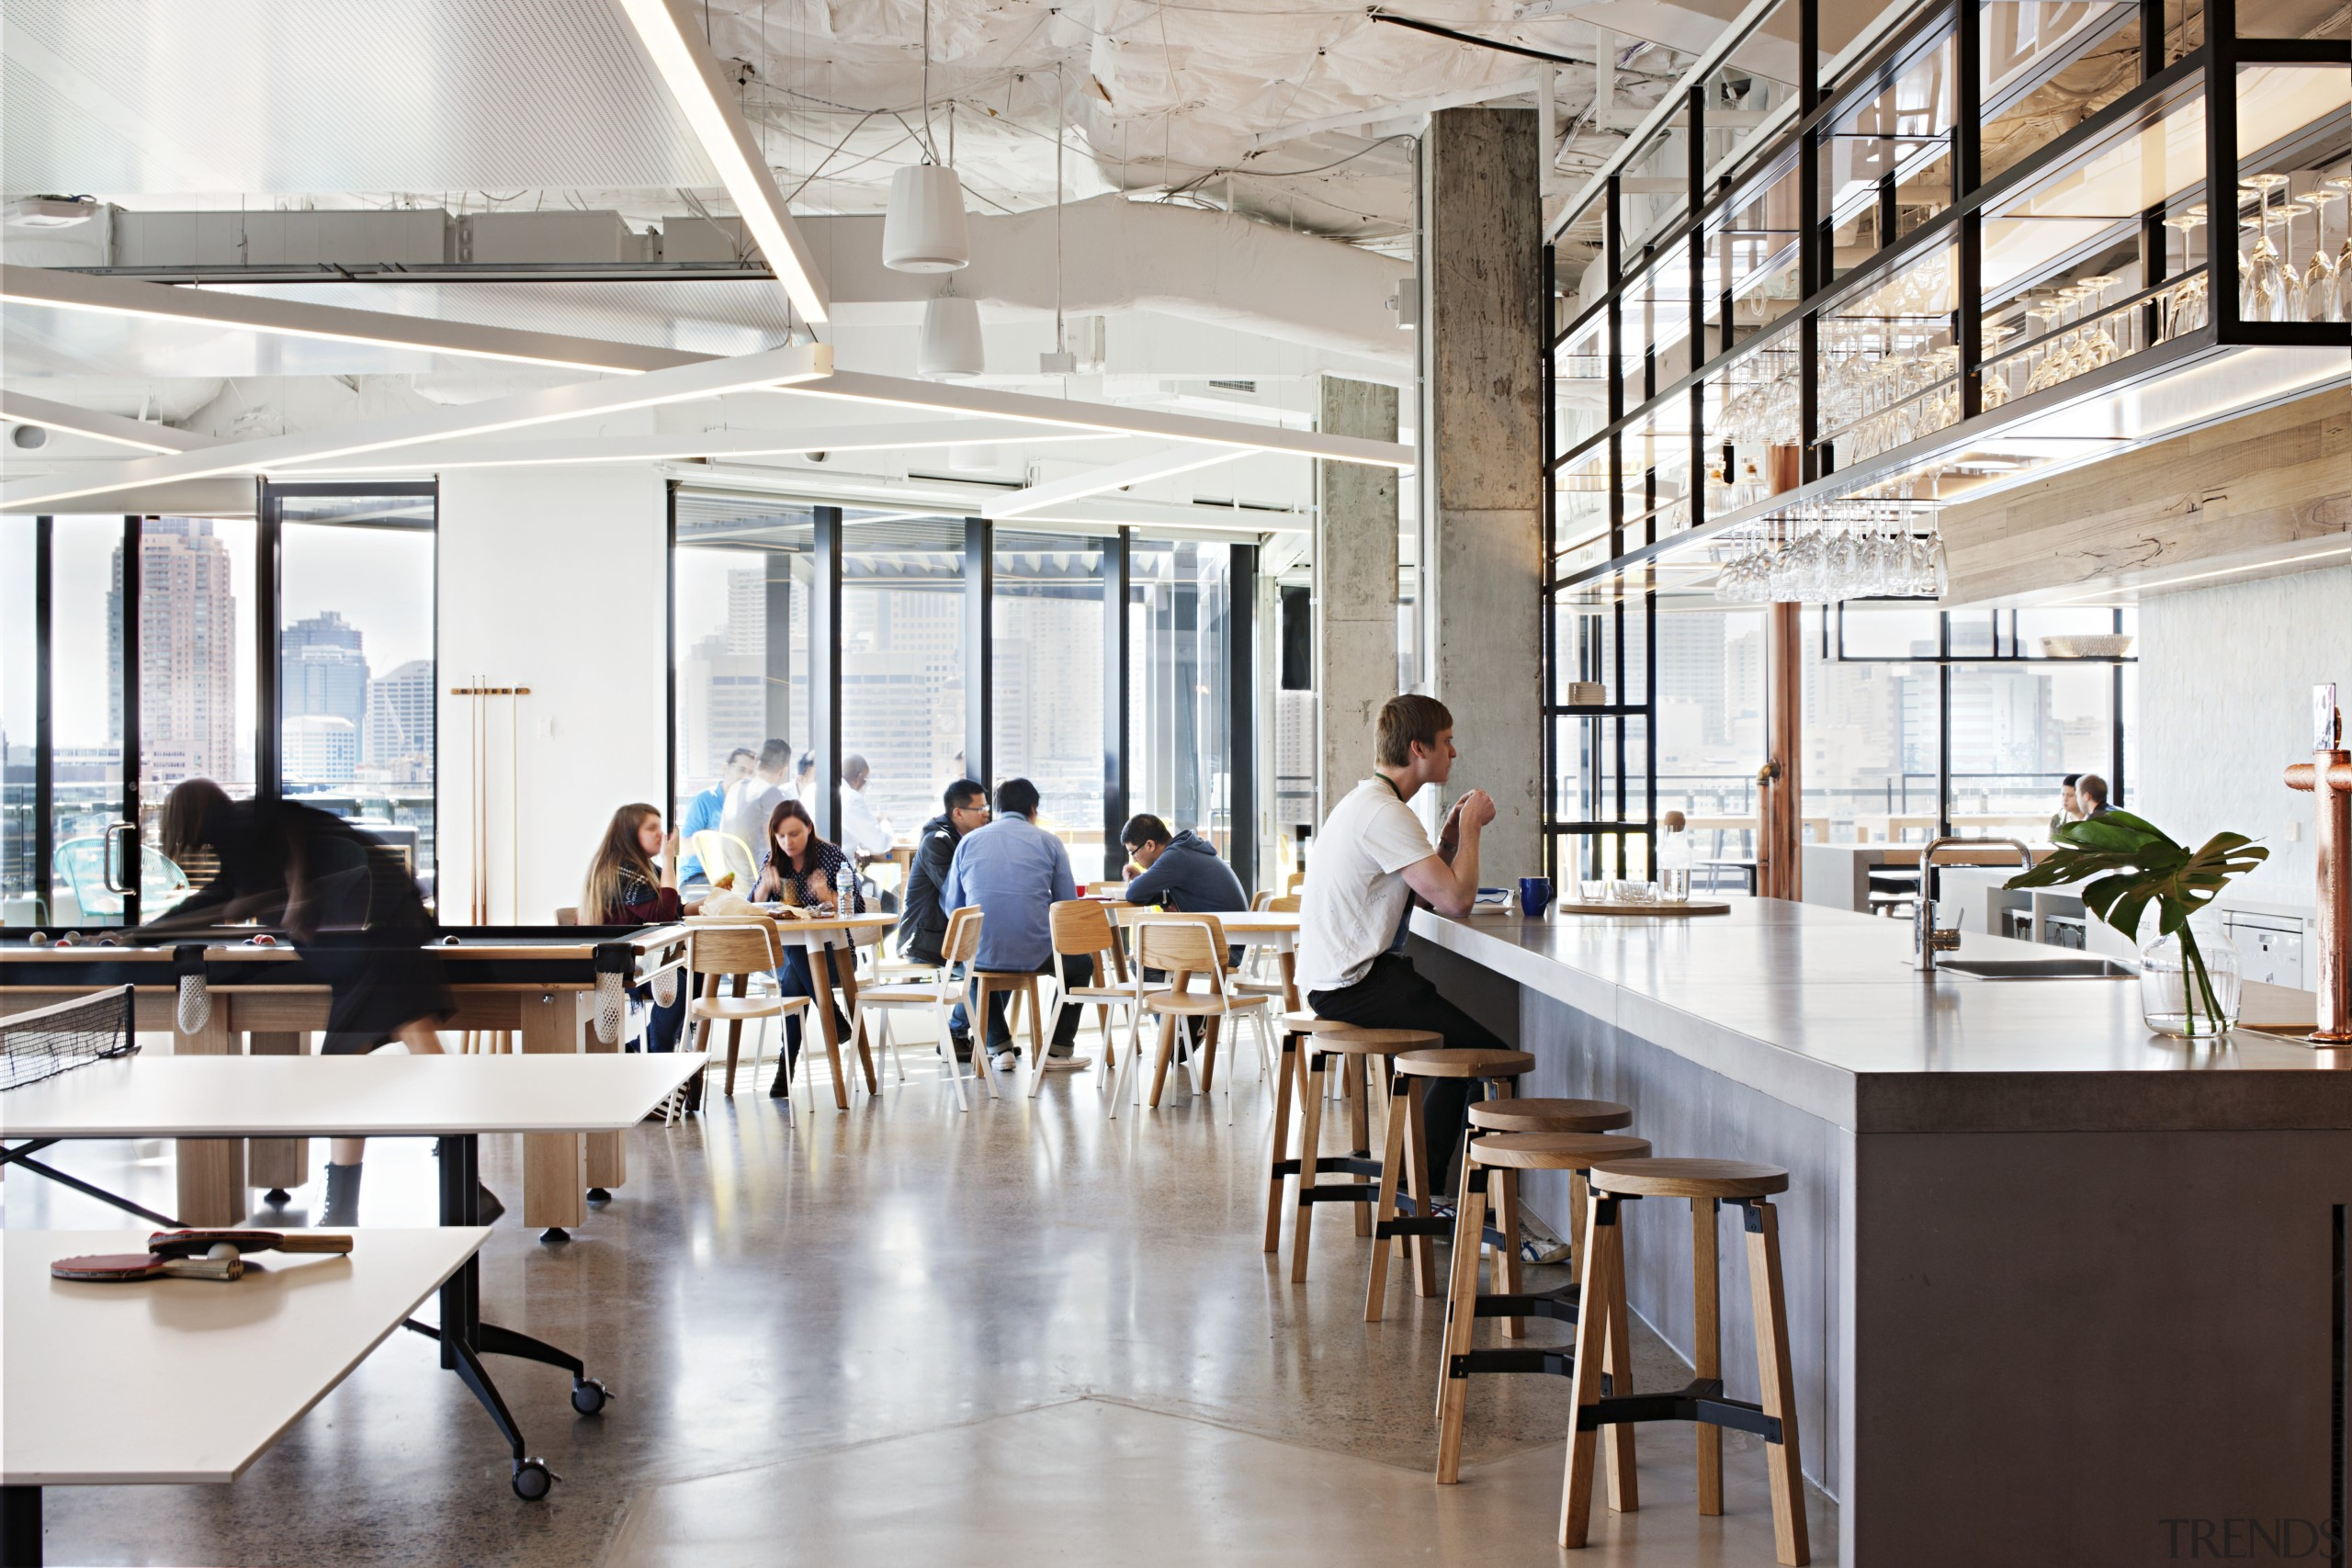 Much of the discussion in workplace design is furniture, interior design, office, white